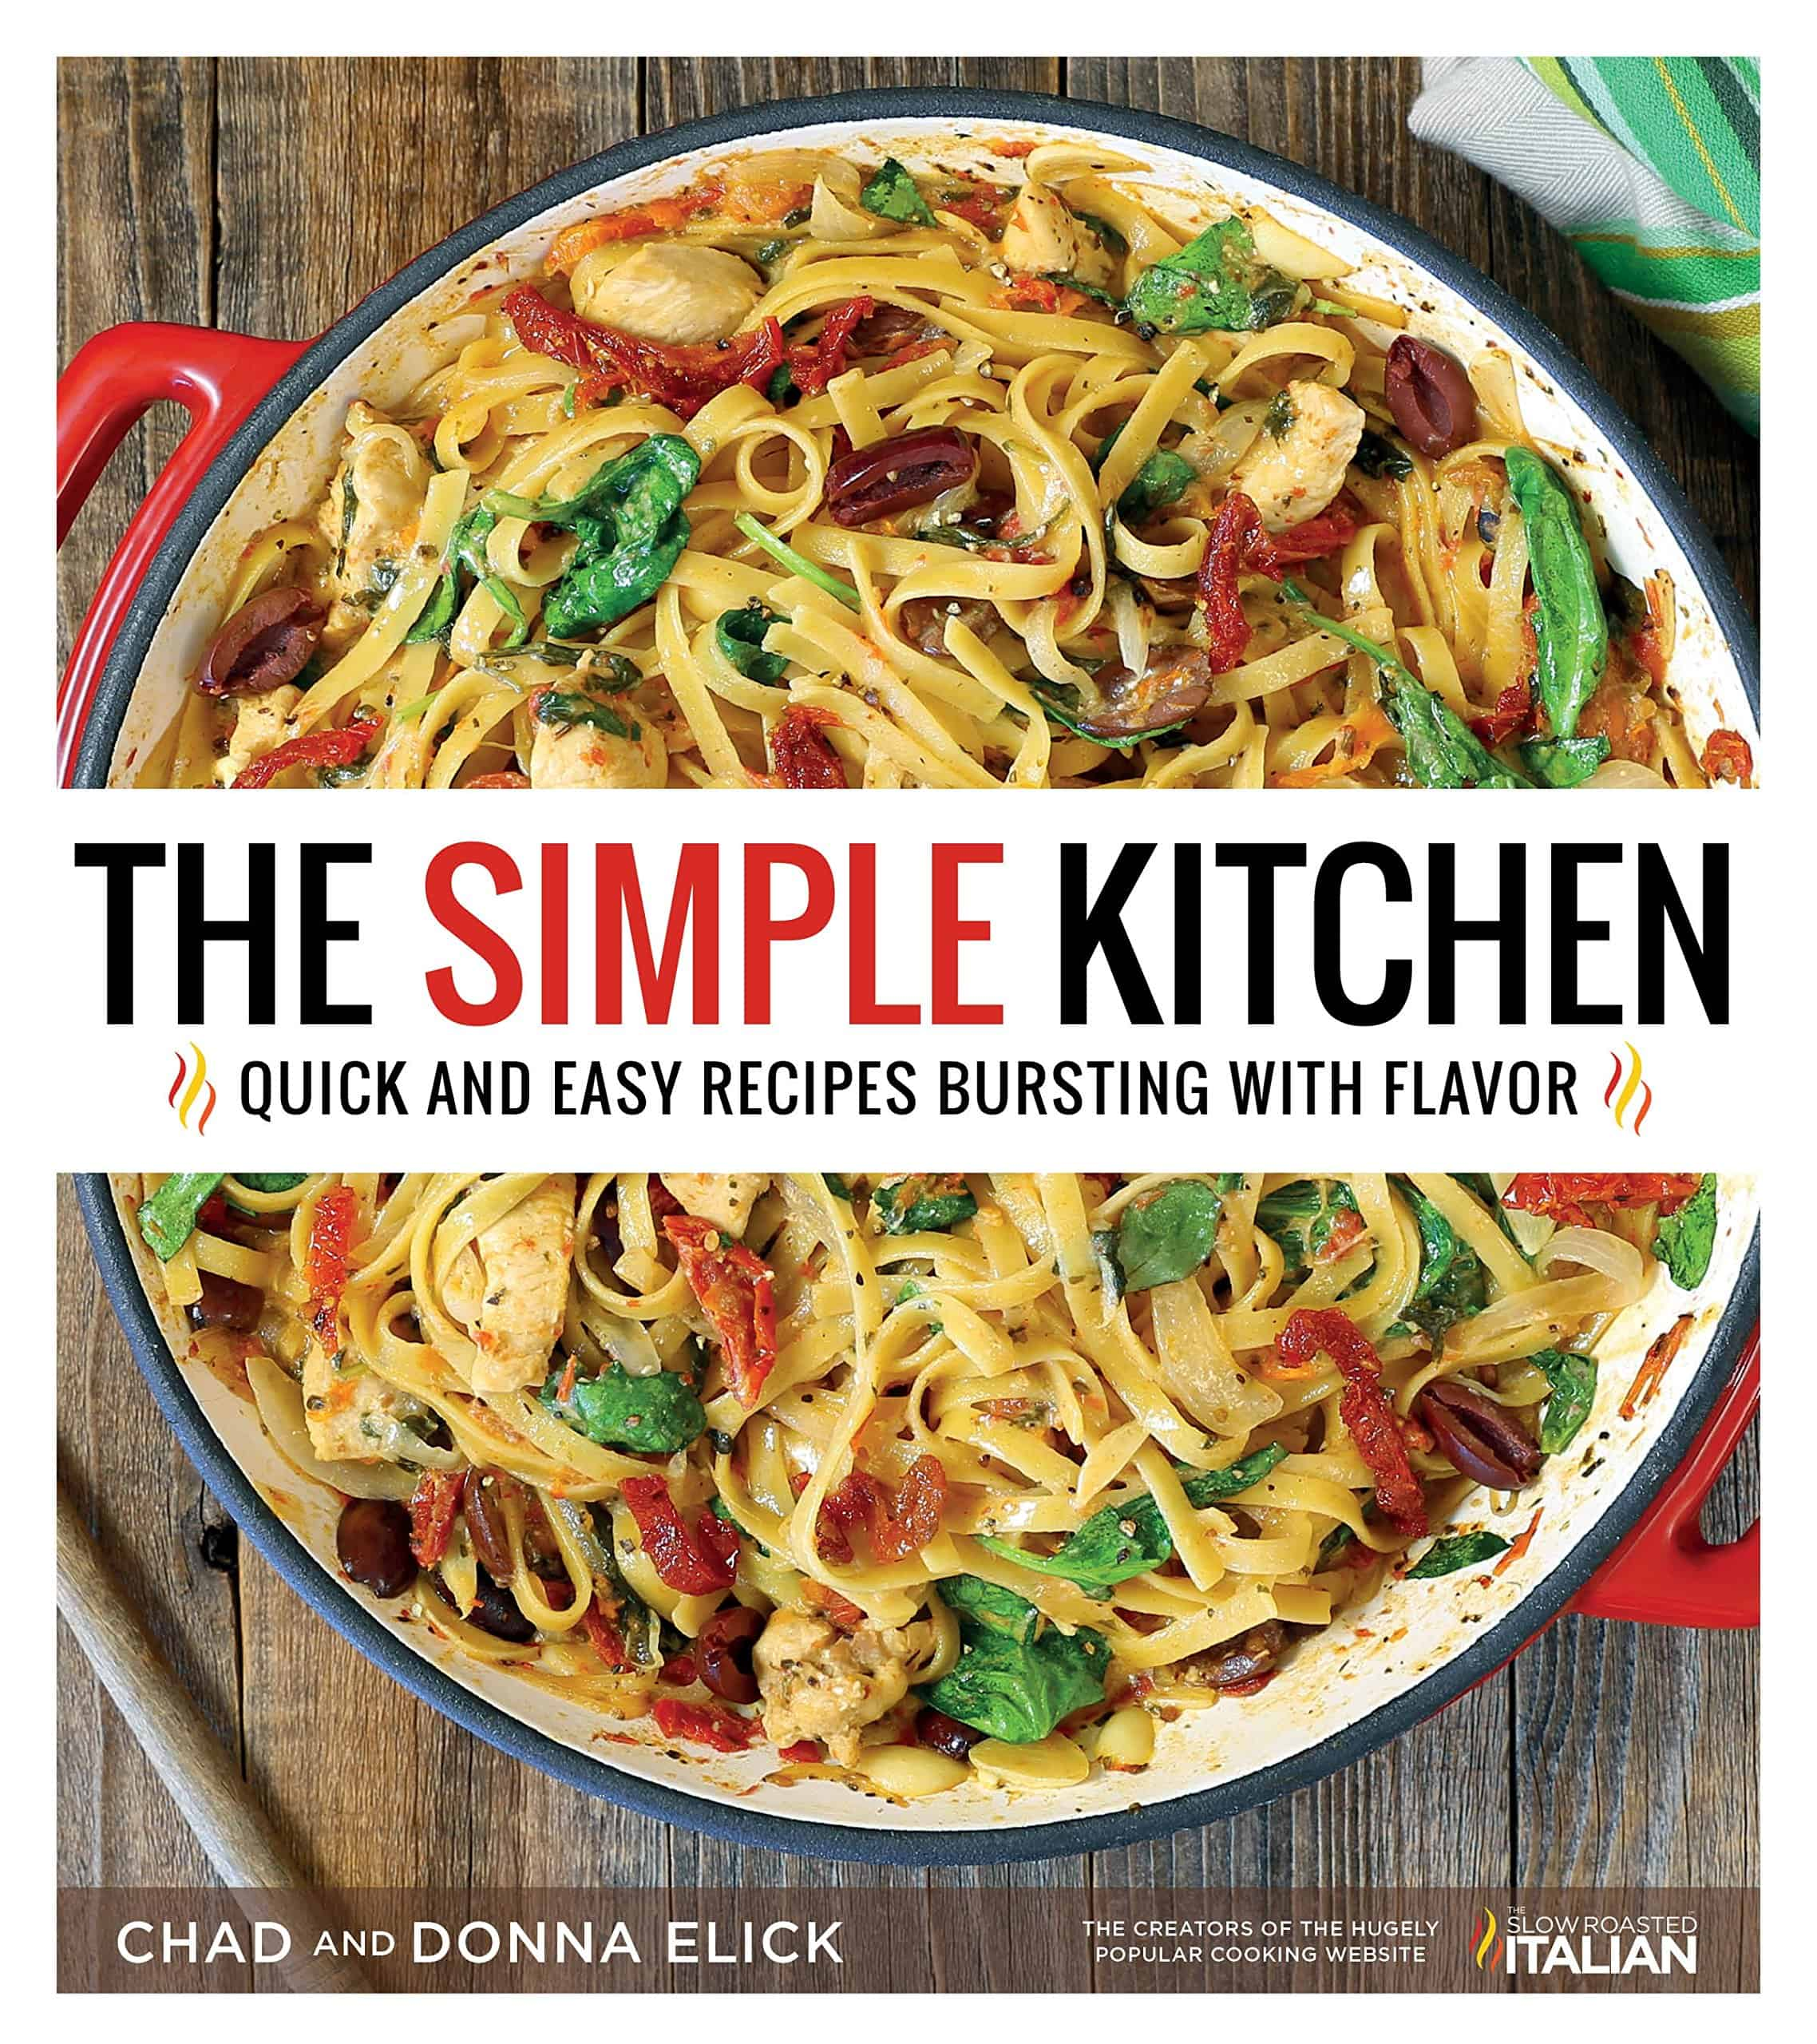 The Simple Kitchen | Quick and East Recipes Bursting with Flavor